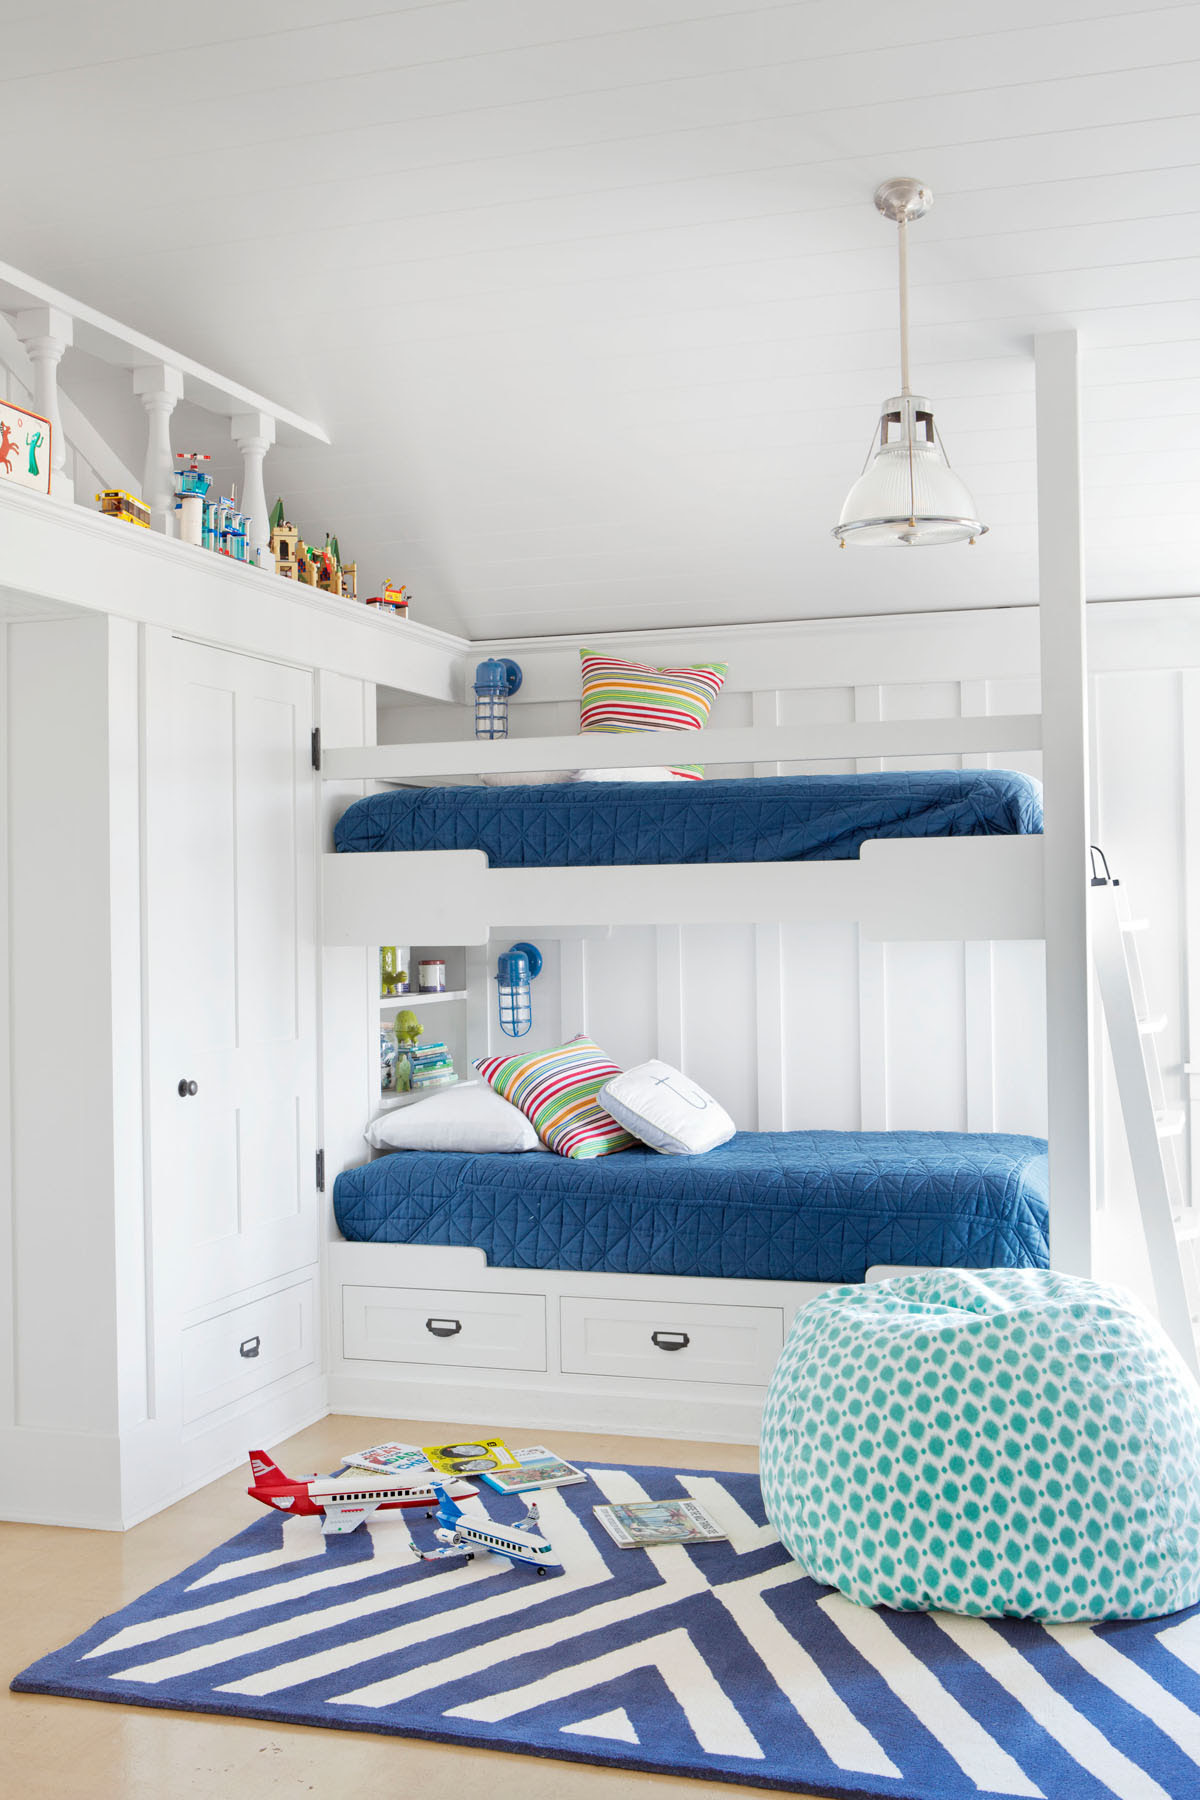 14 Best Boys Bedroom Ideas - Room Decor and Themes for a ...